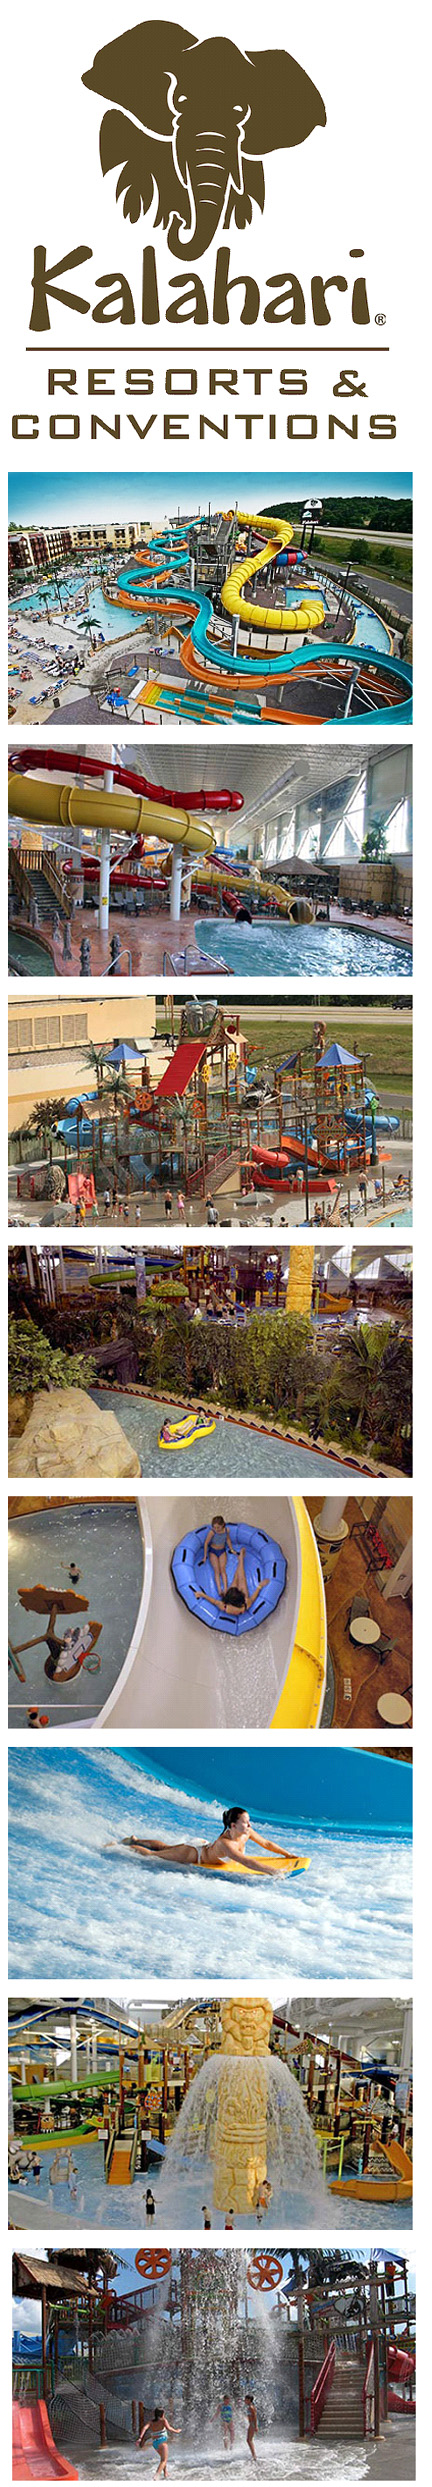 City of Round Rock Hosts Kalahari Resorts Open House